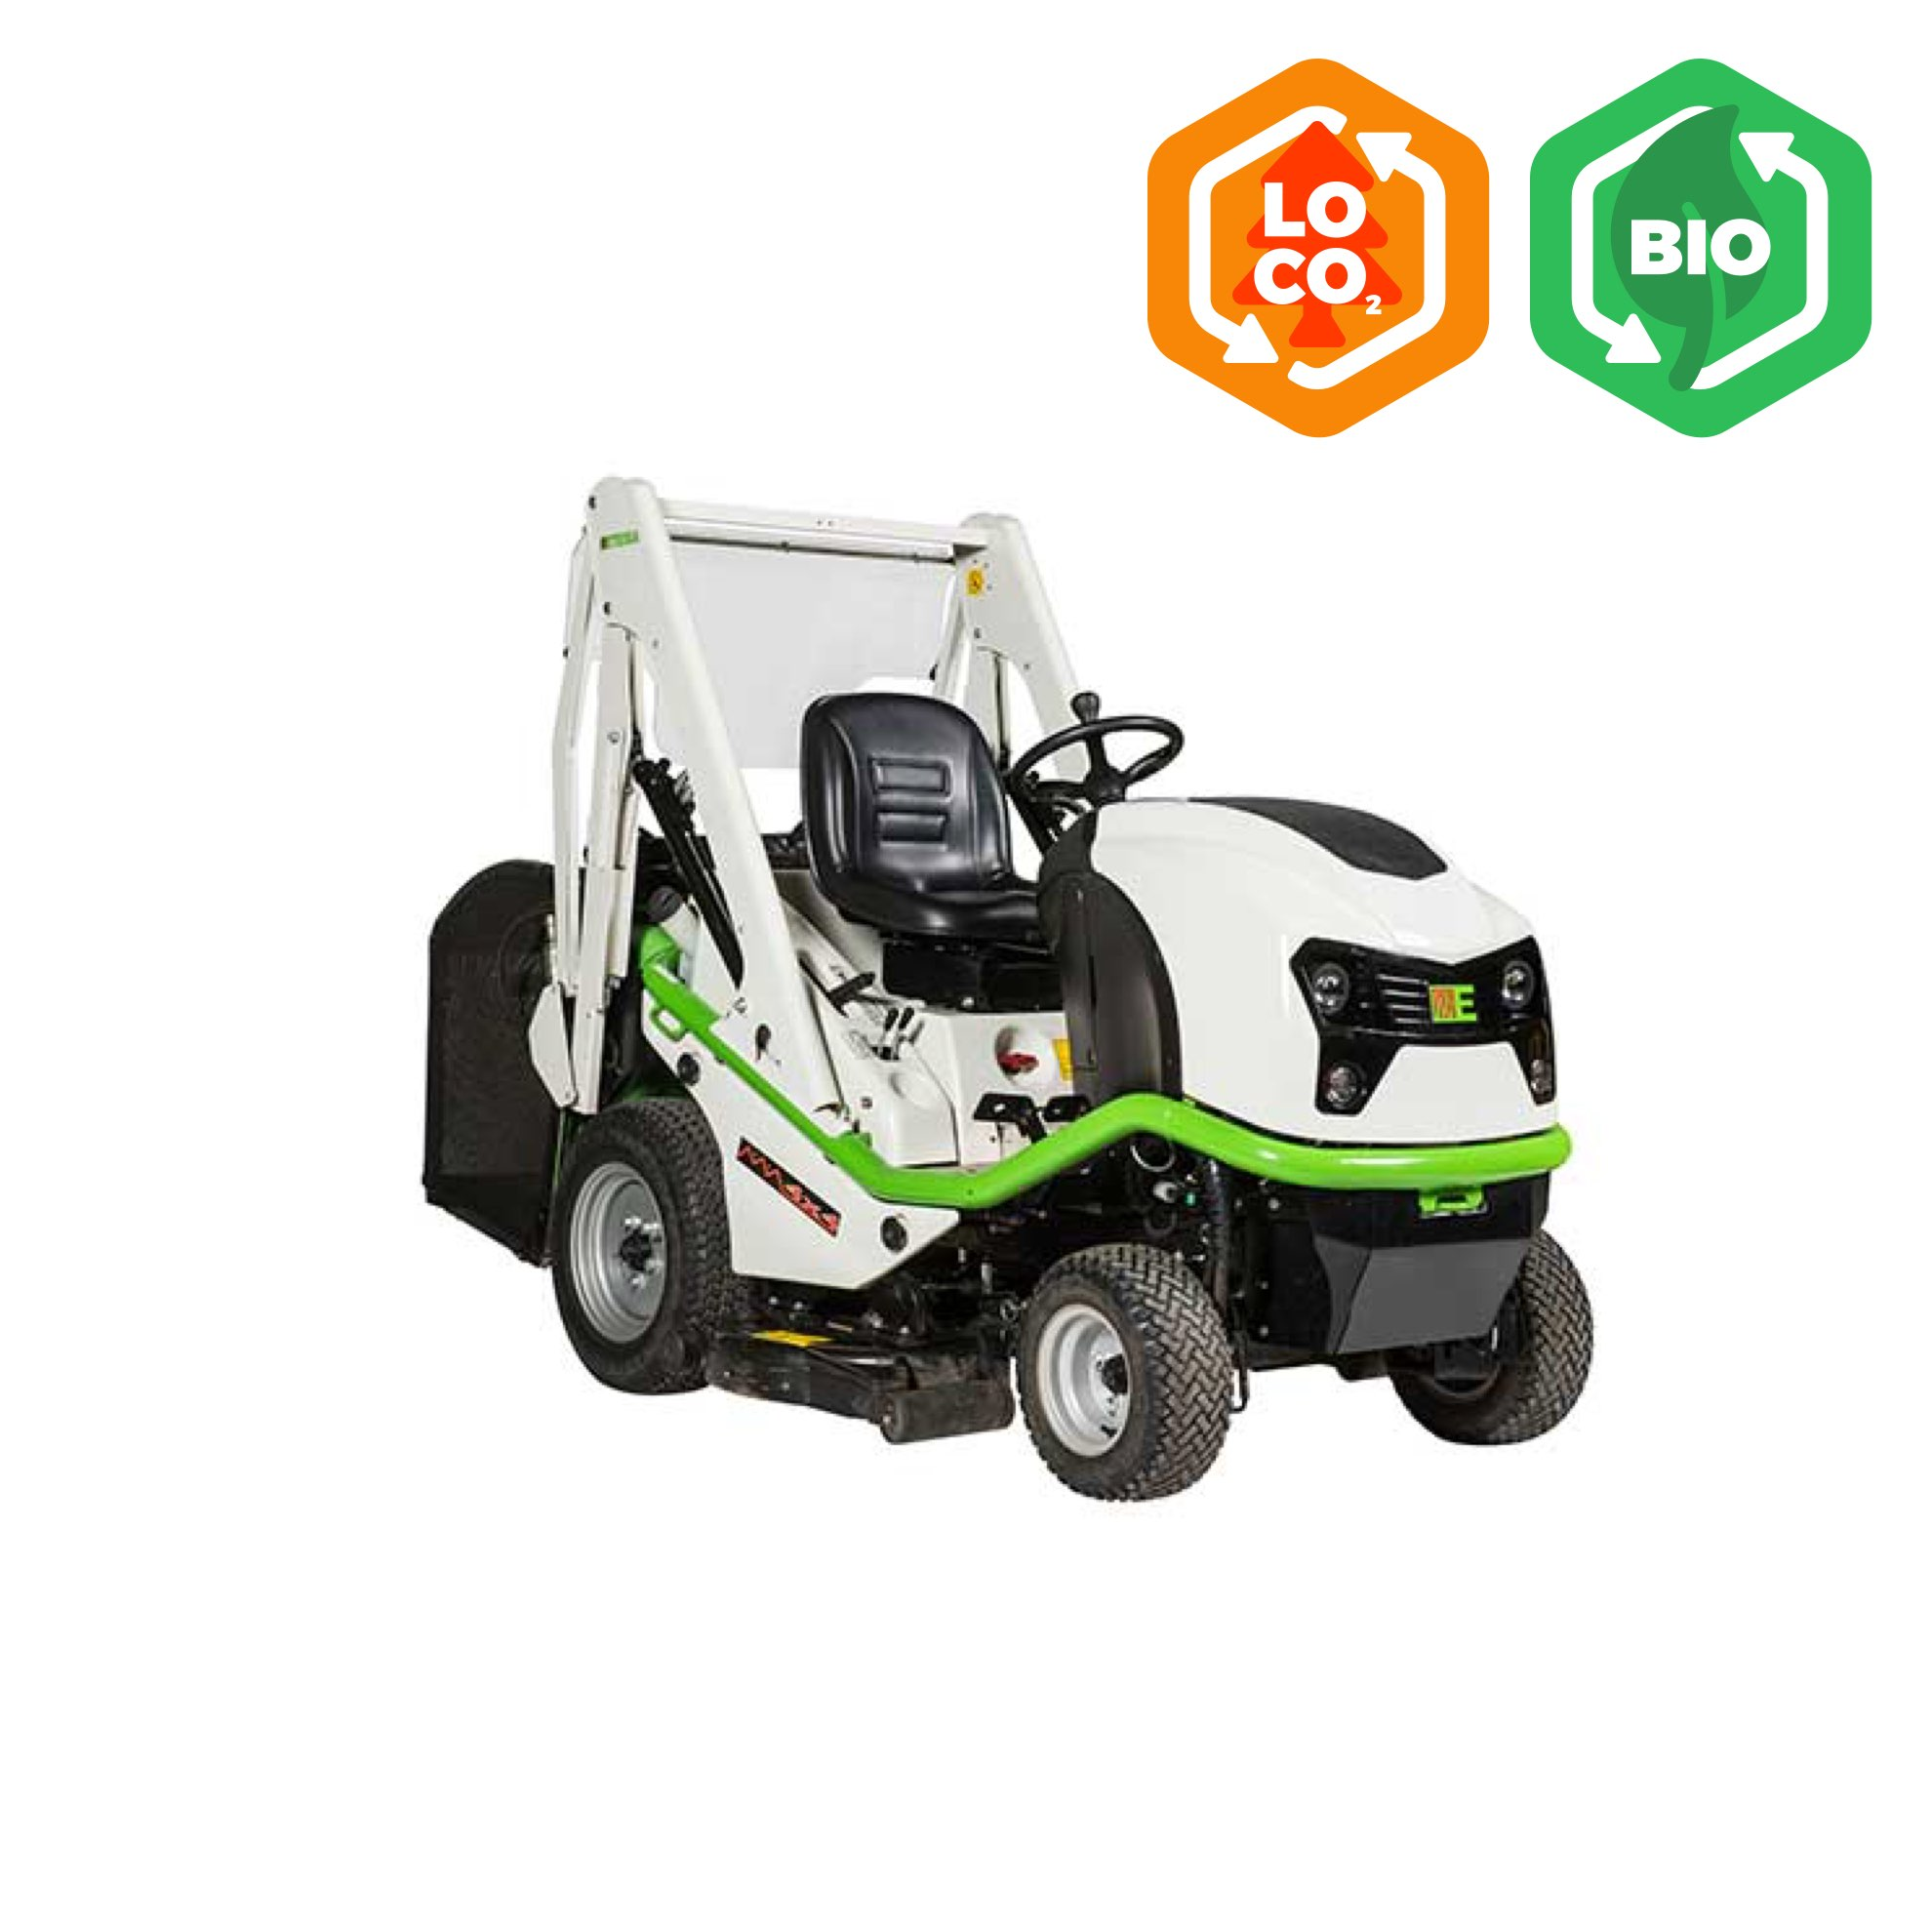 Etesia Buffalo 124 HVHPX2 Ride-on Mower